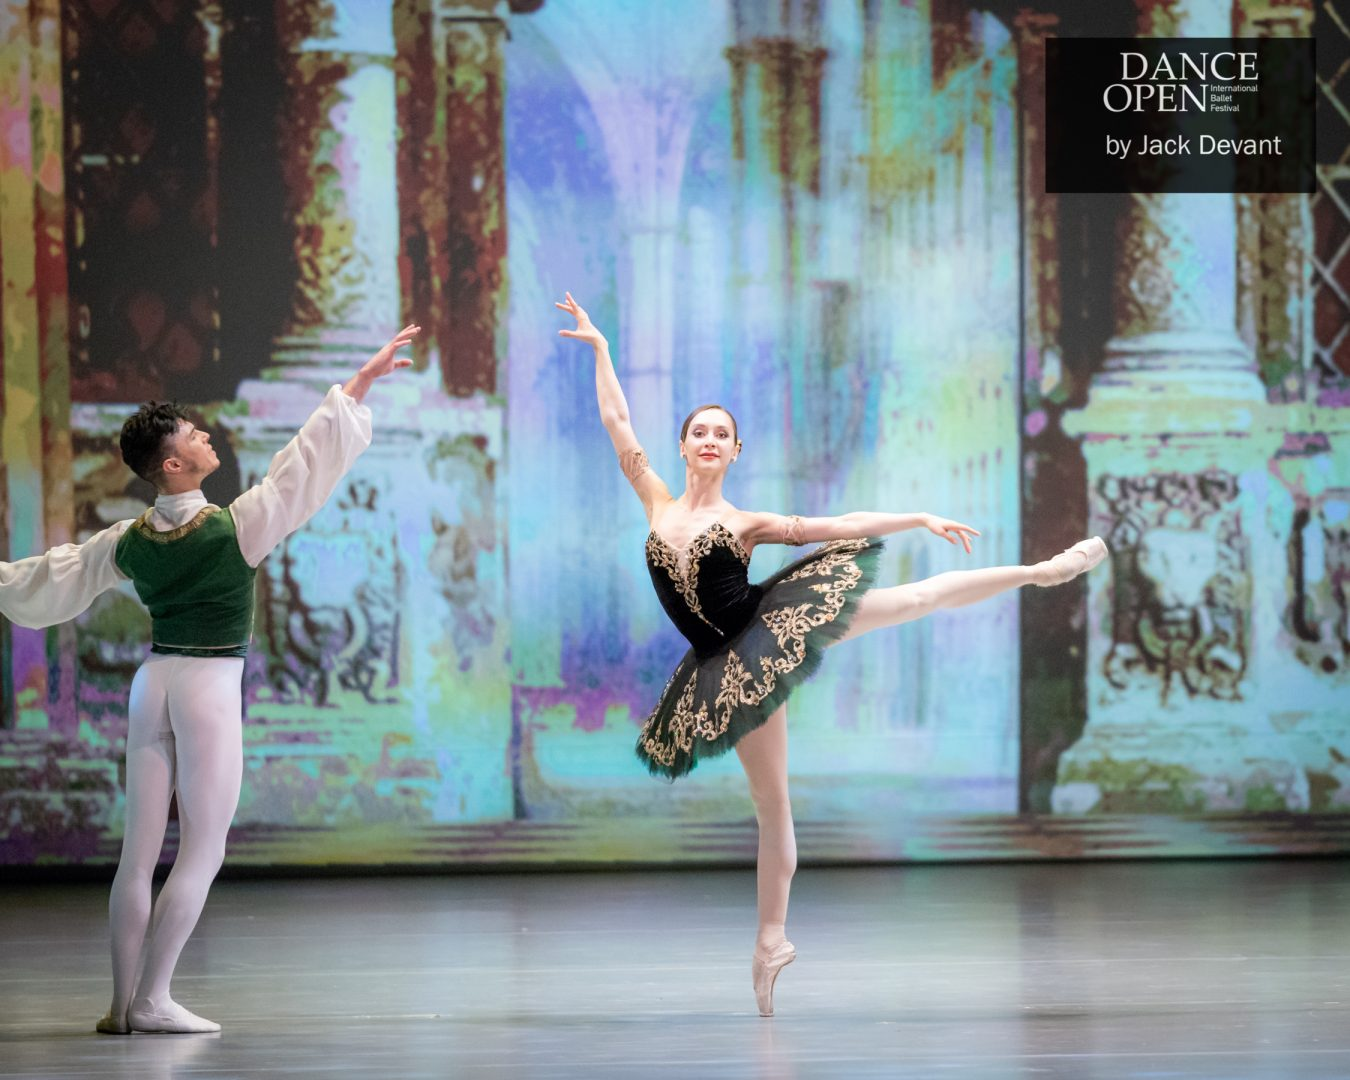 Anna Ol and Joseph Gatti in Esmeralda pdd arabesque